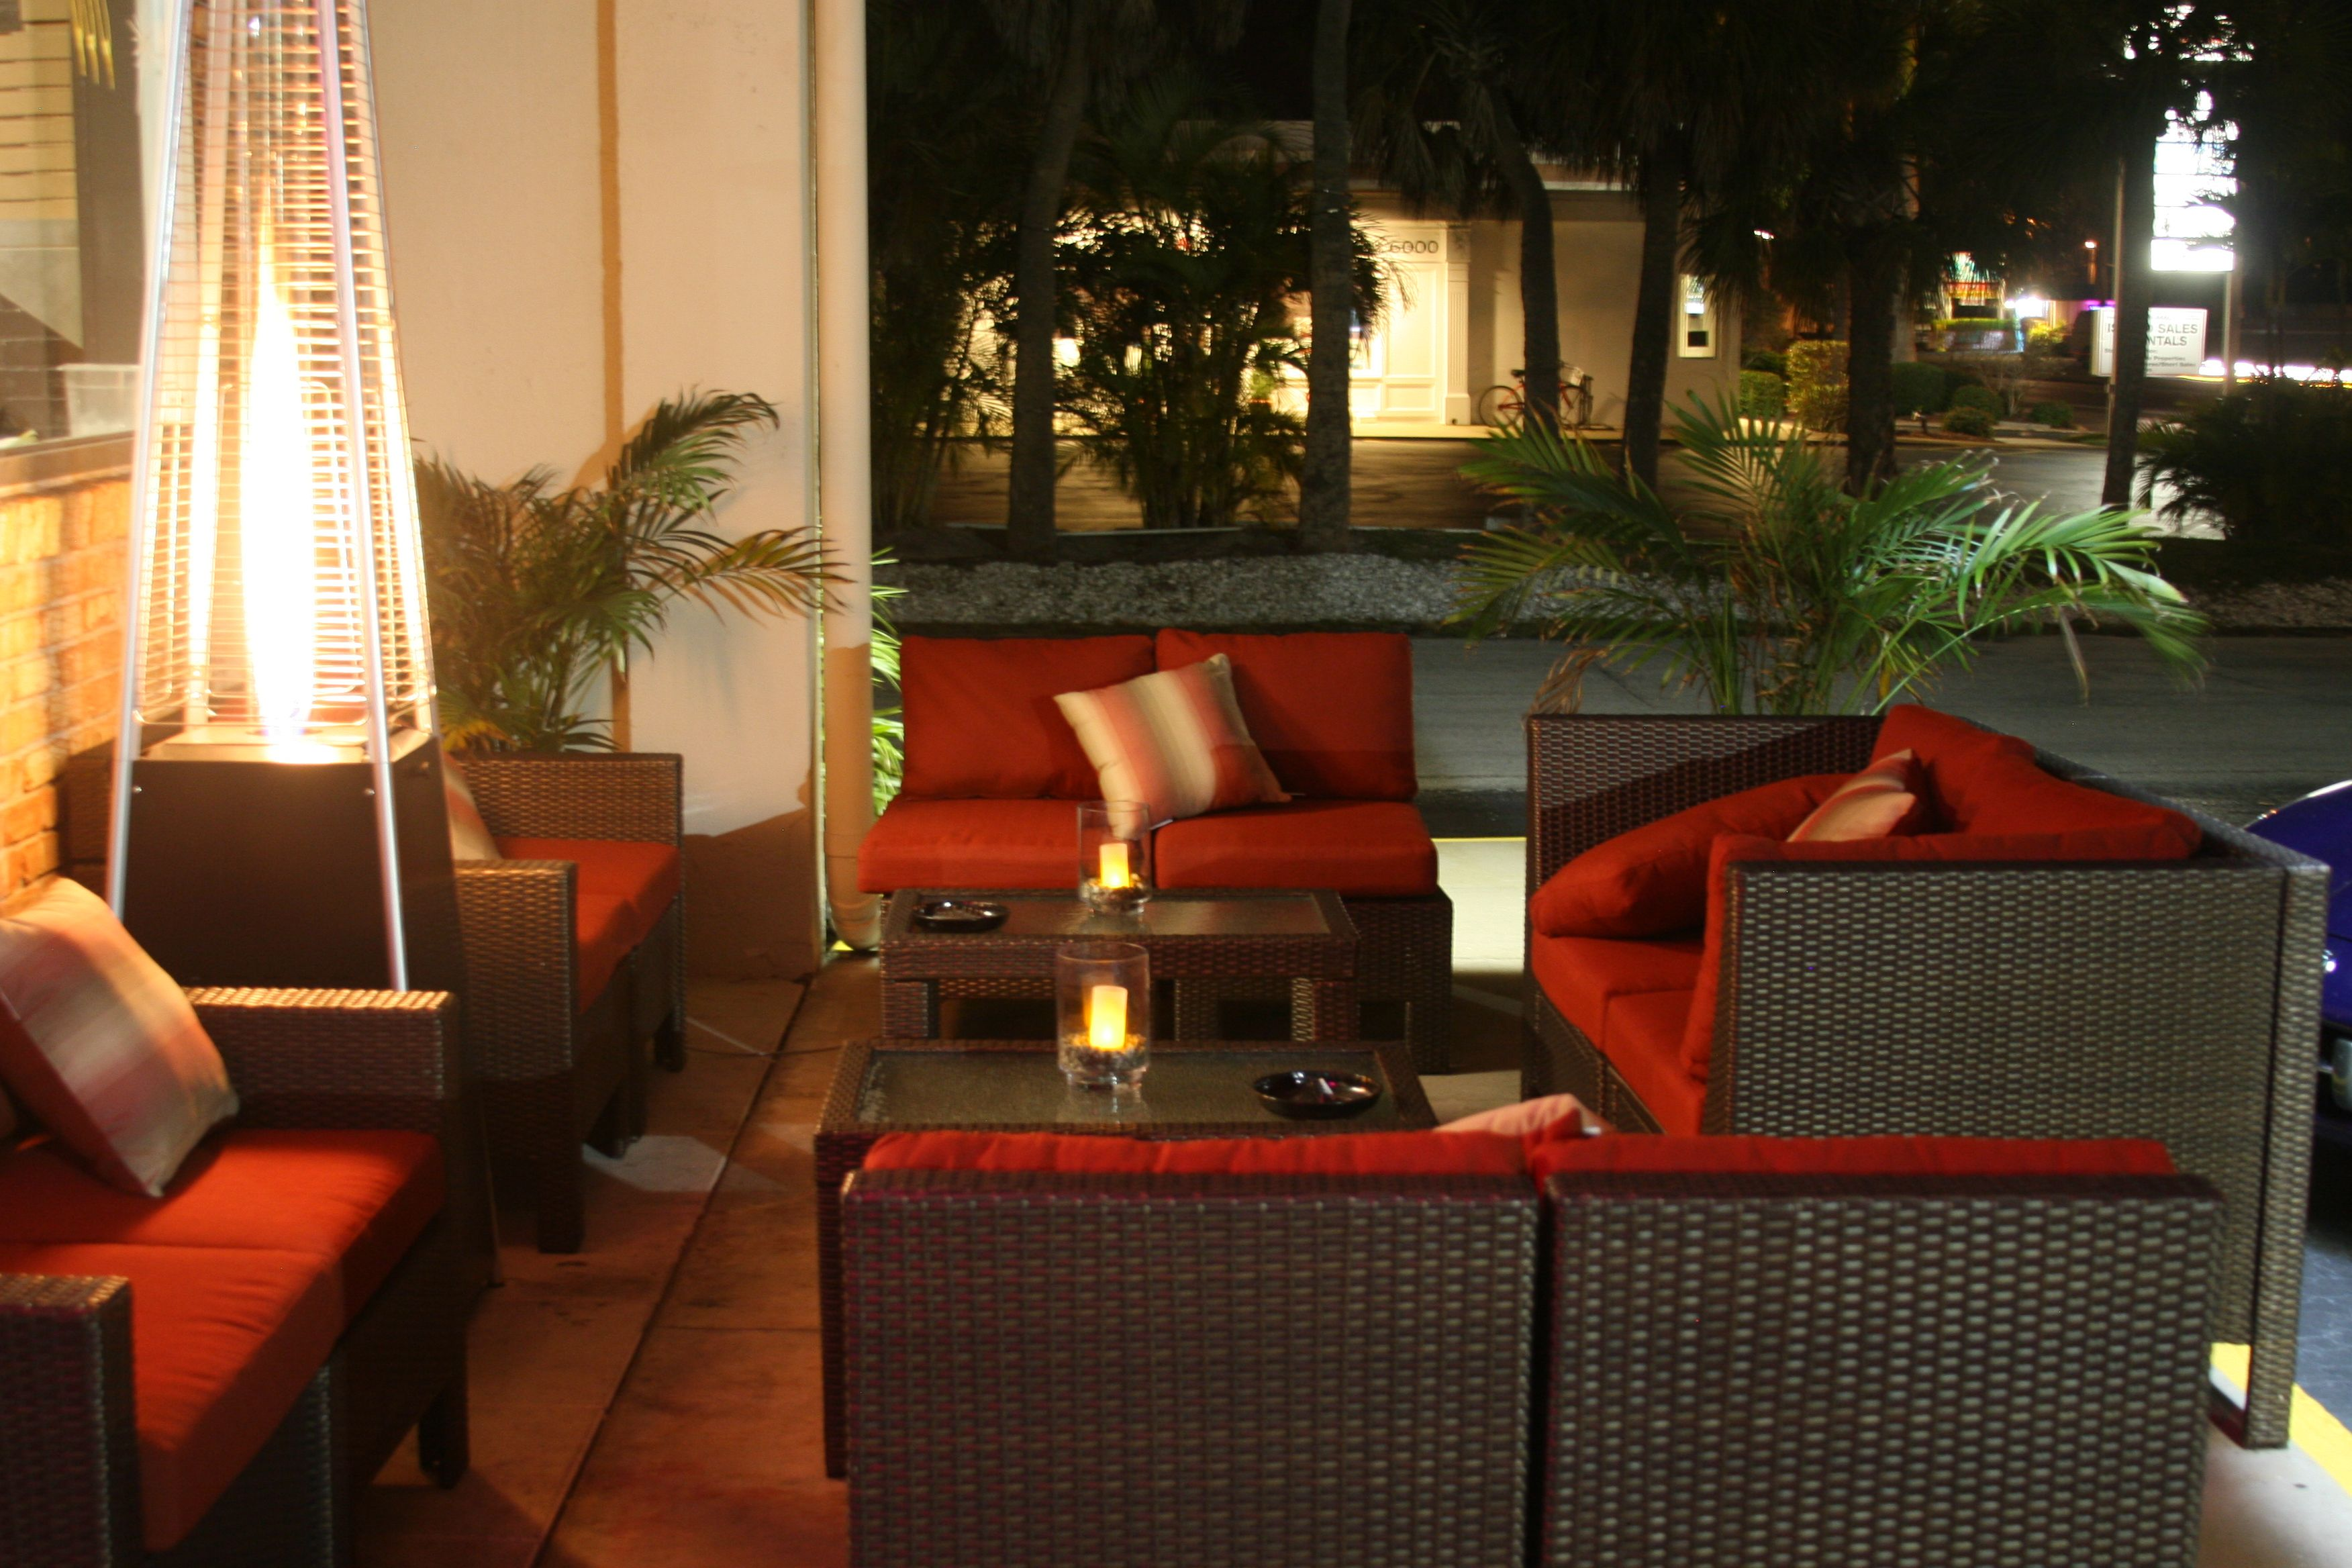 Outdoor Dining Outdoor furniture sets, Outdoor dining